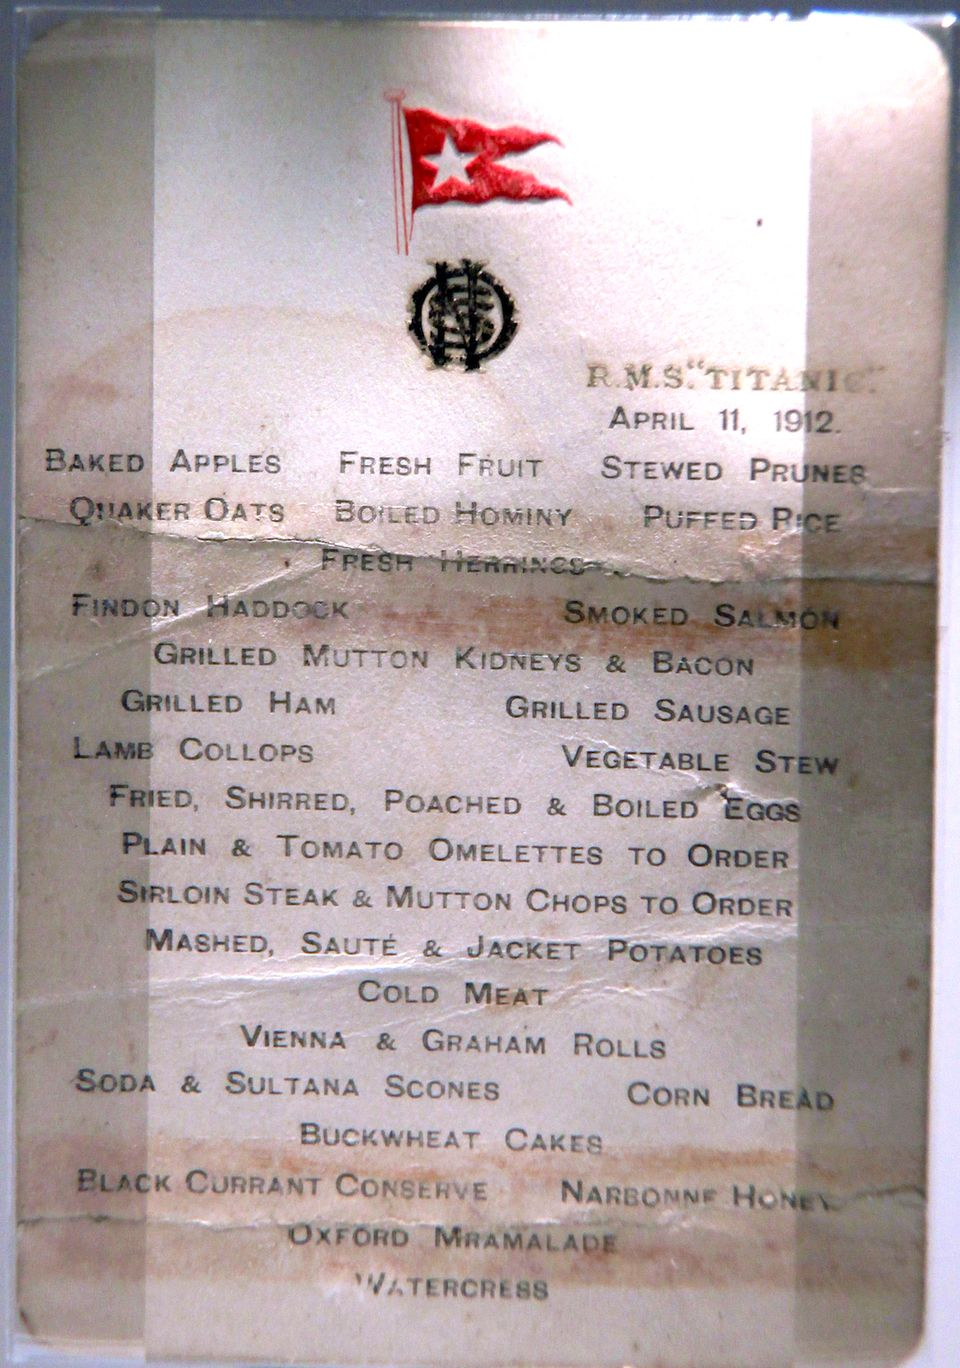 Menus From The Rms Titanic 39 S Fateful Voyage